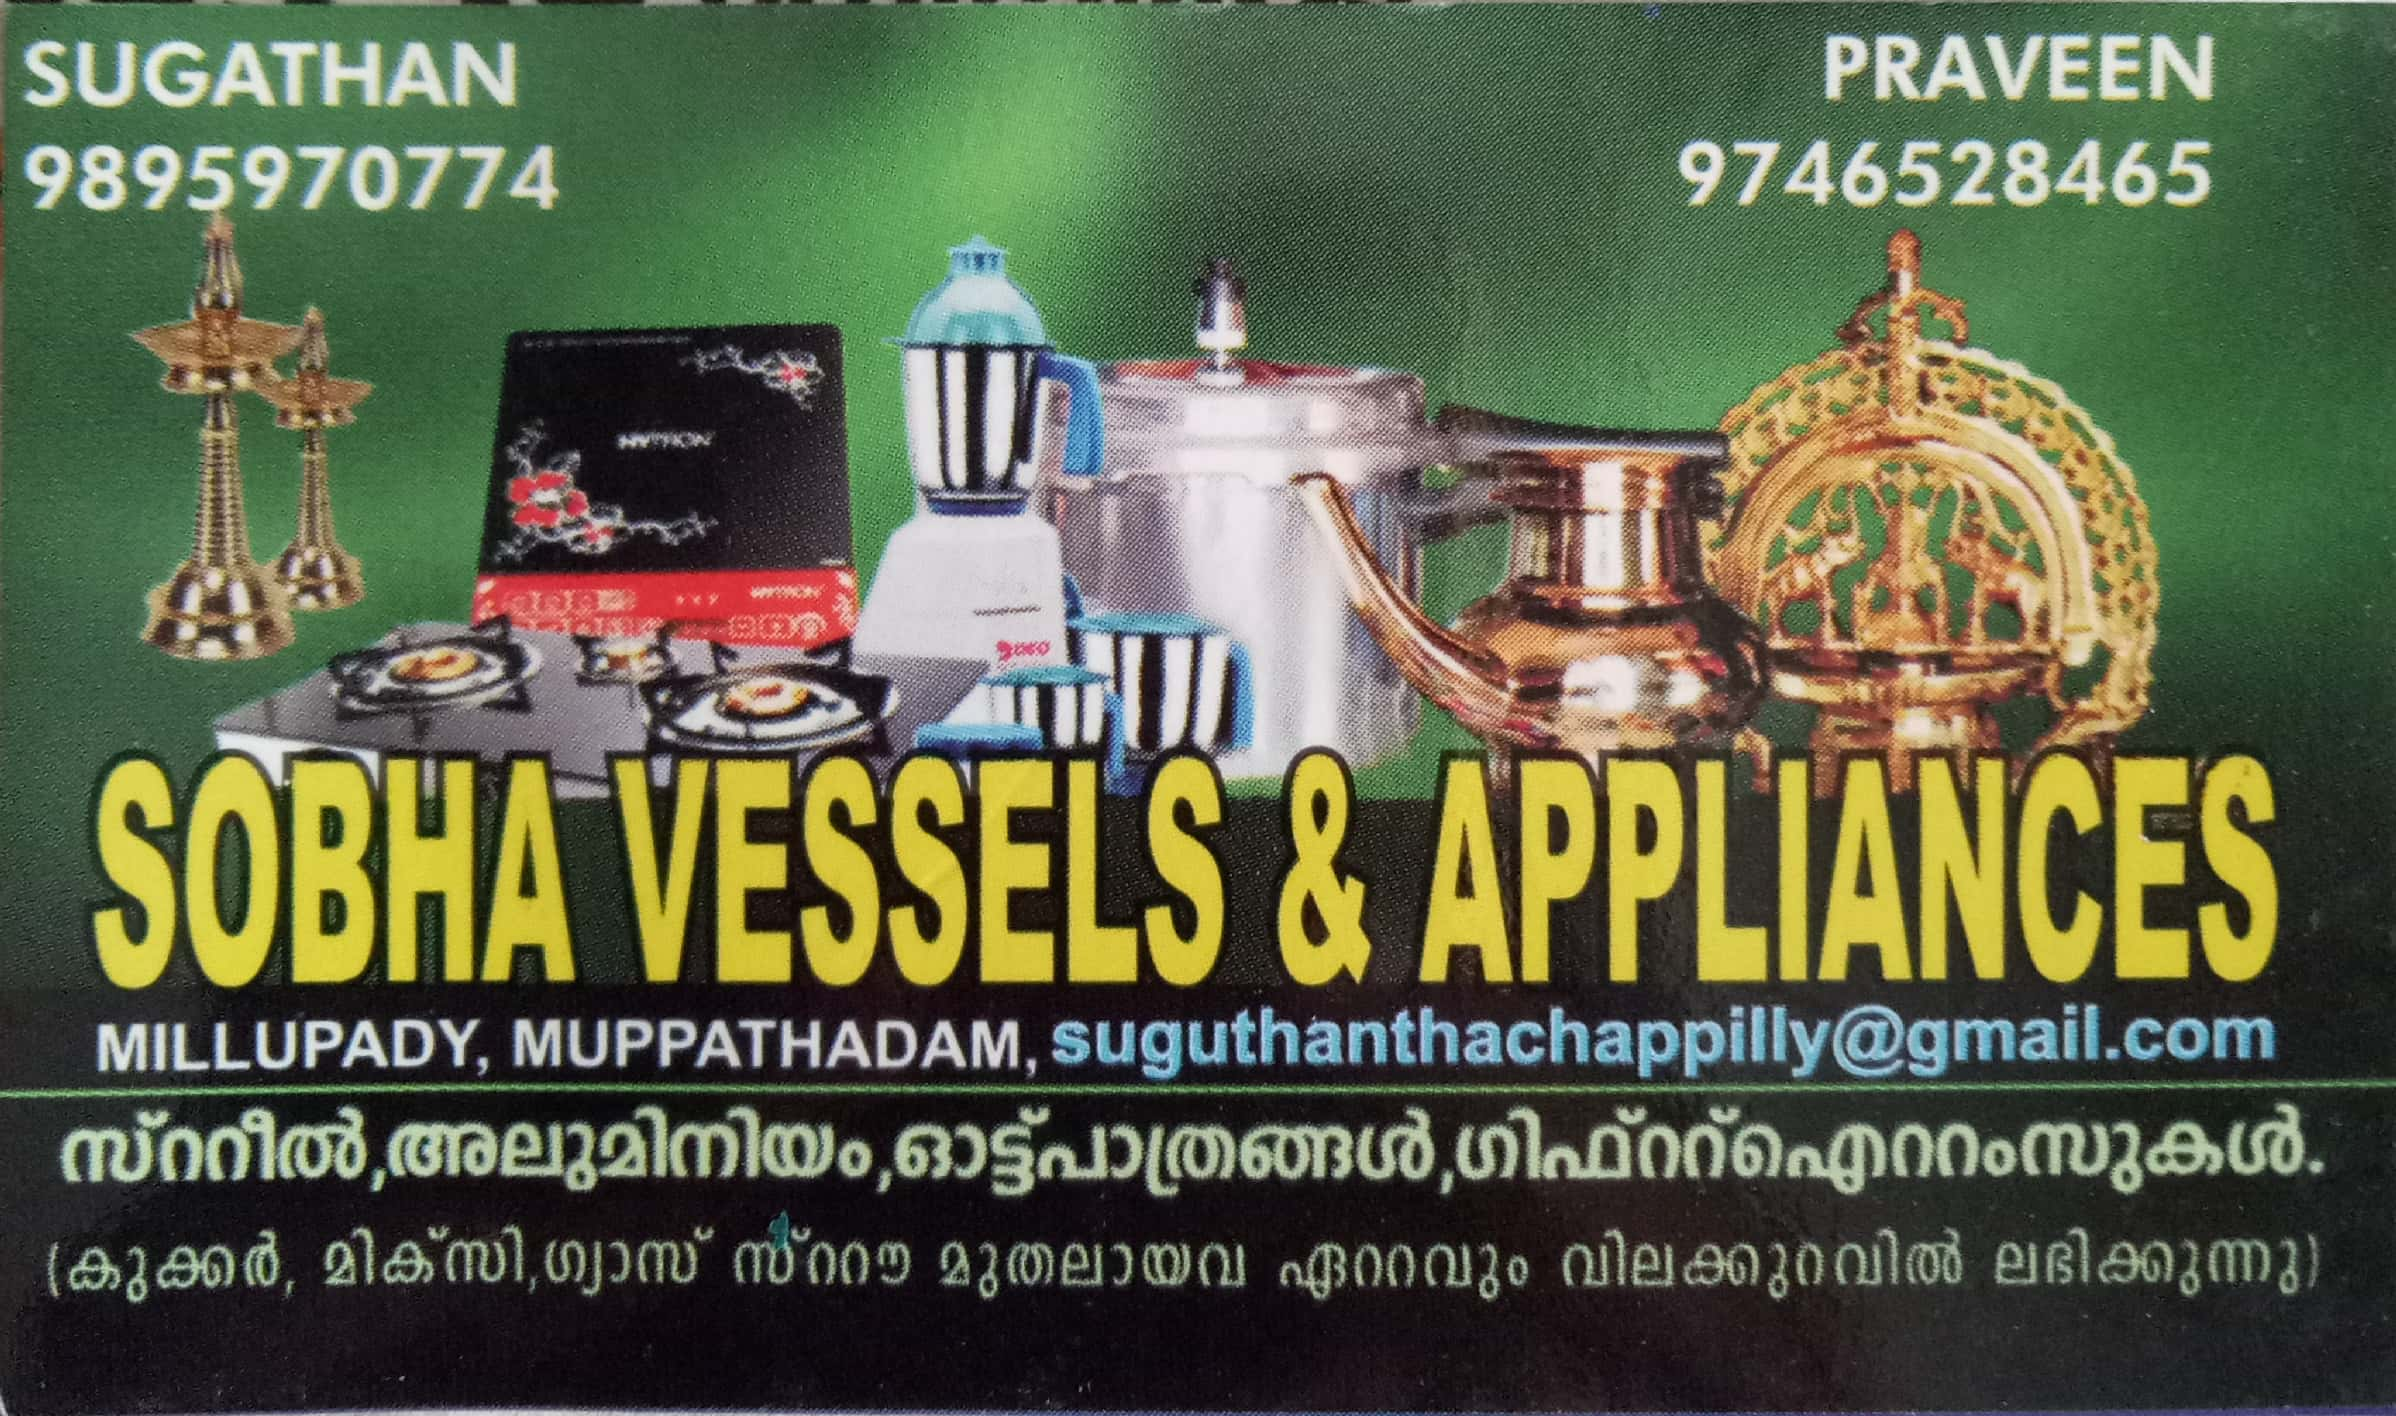 SHOBHA VESSELS & APPLIANCES, CHEMICALS AND METALS,  service in Aluva, Ernakulam